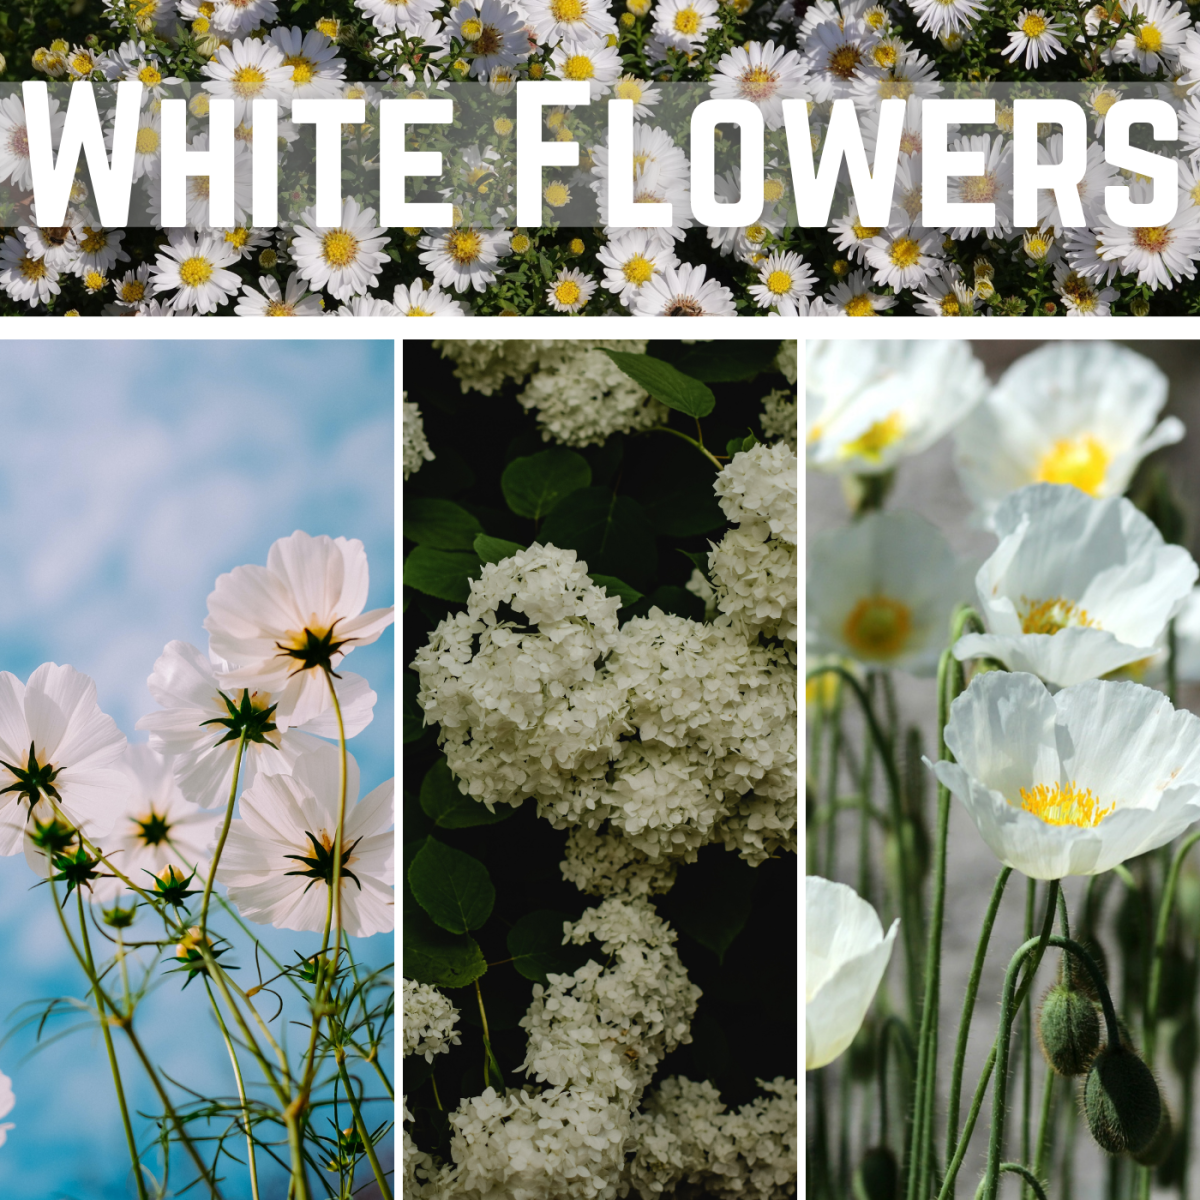 White flowers can really brighten up a garden.